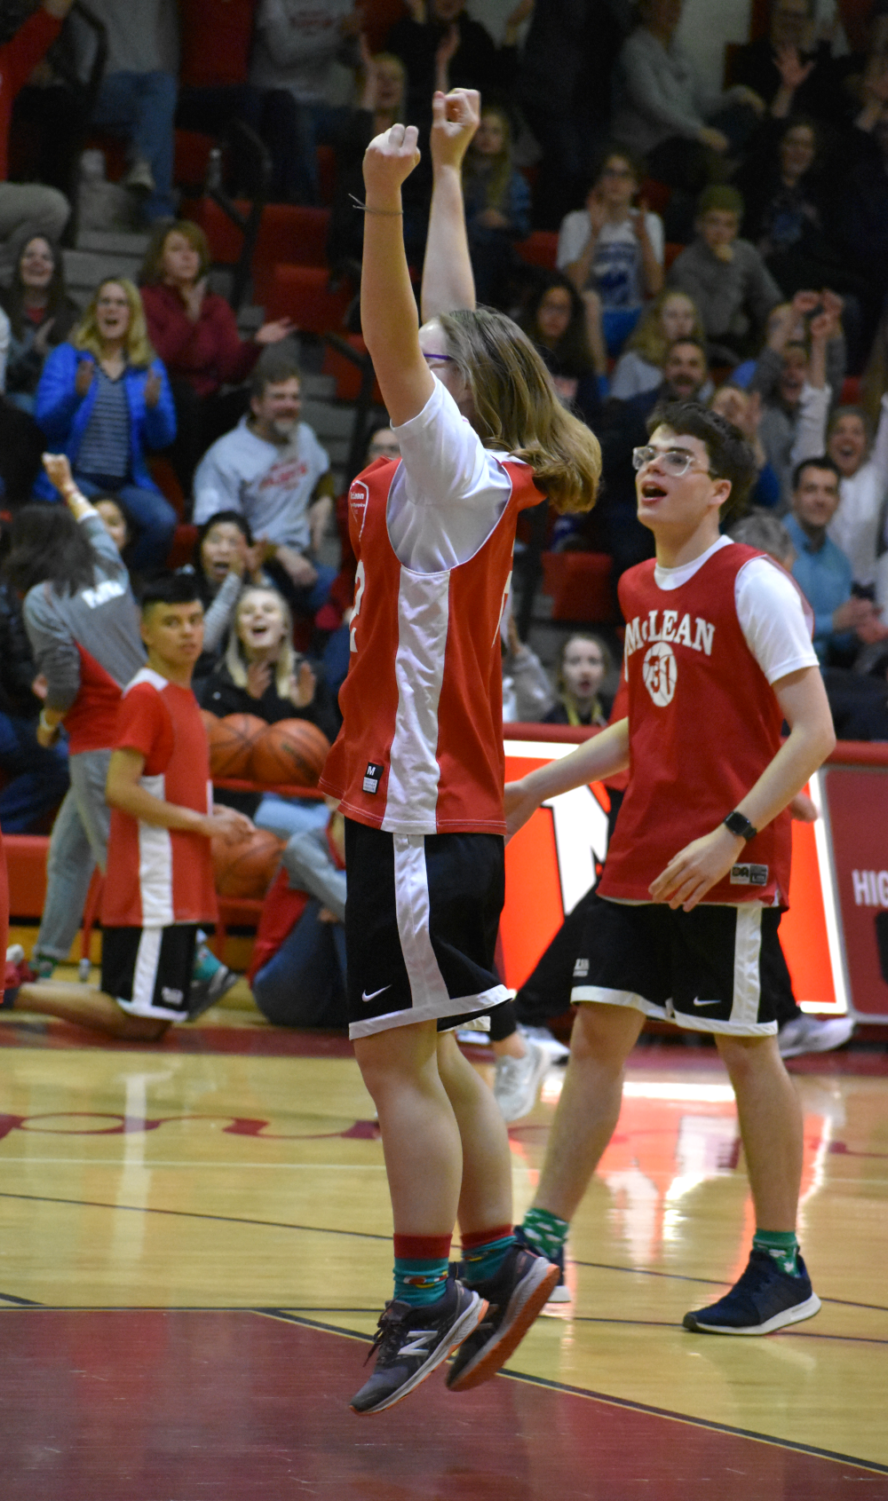 Maia+Stewart+celebrates+after+scoring+her+first+basket+of+the+game%2C+seconds+before+the+fourth+quarter+buzzer.+%28photo+by+Maren+Kranking%29